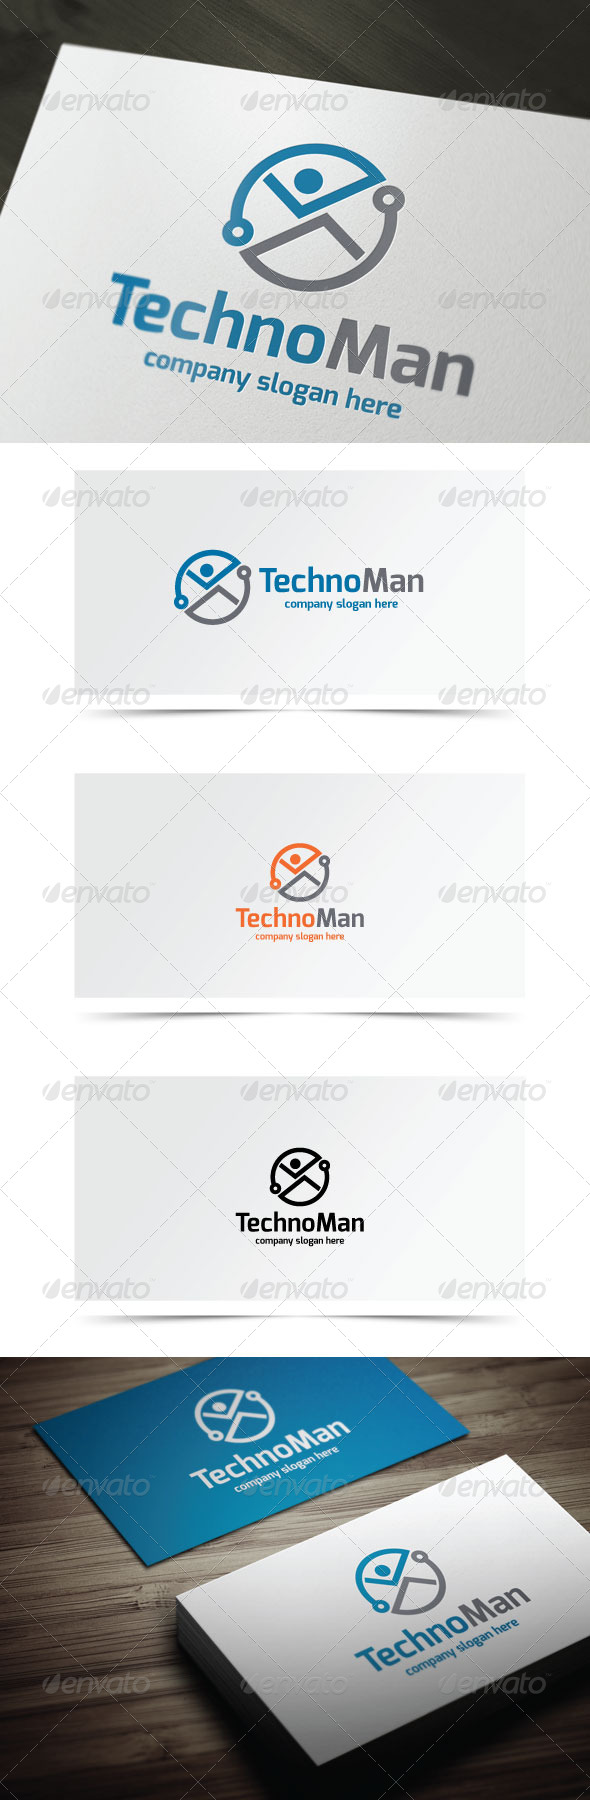 GraphicRiver Techno Man 7004536